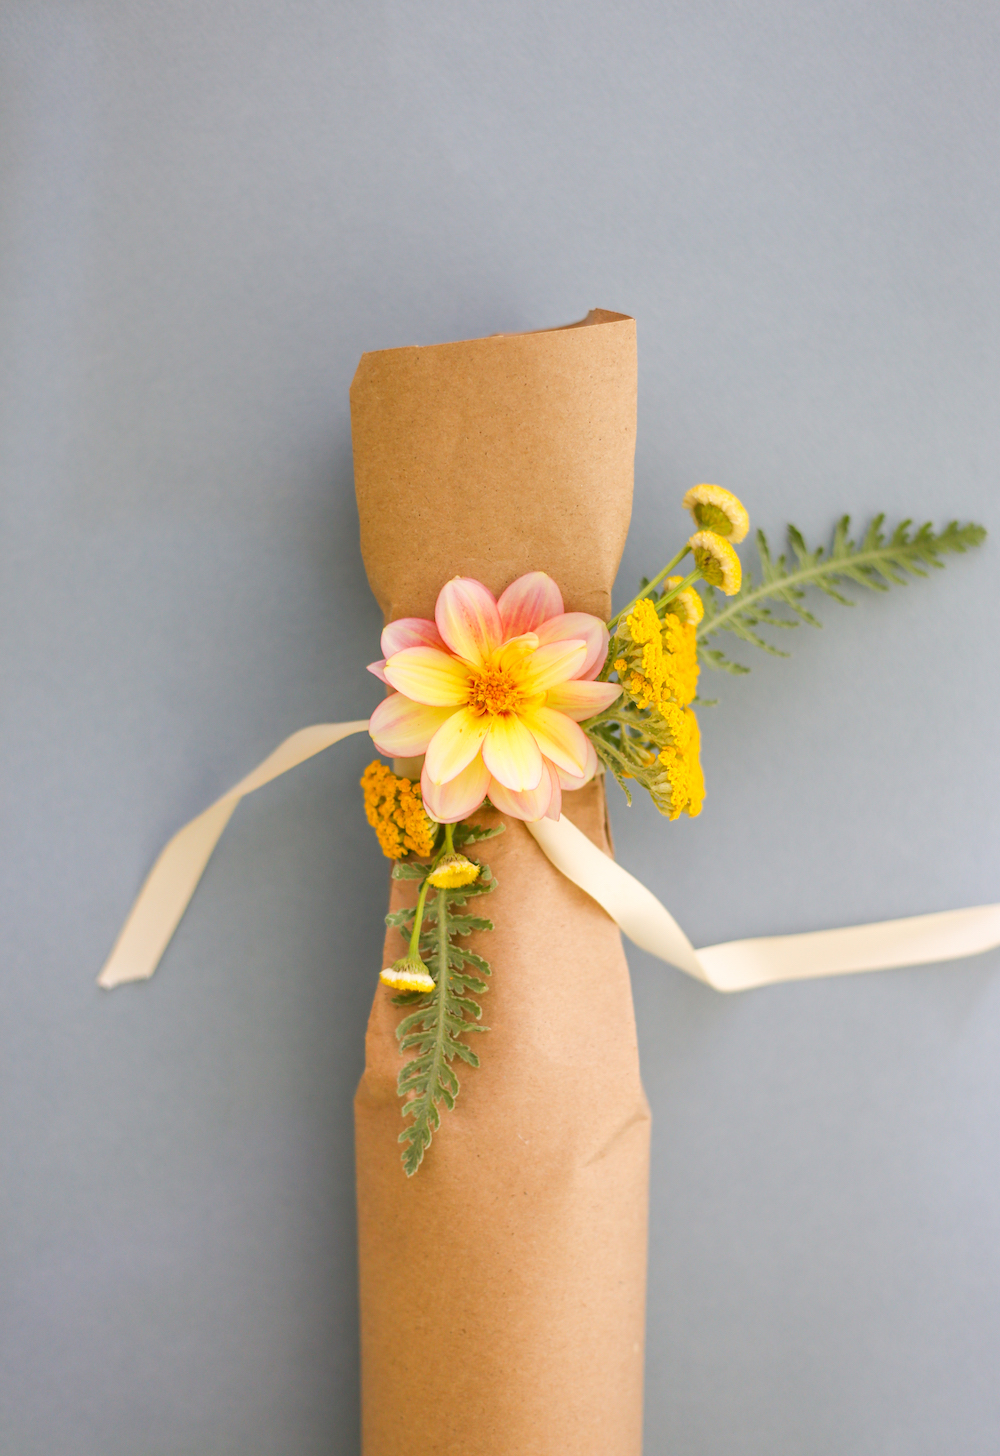 Wine wrapped in craft paper with flowers